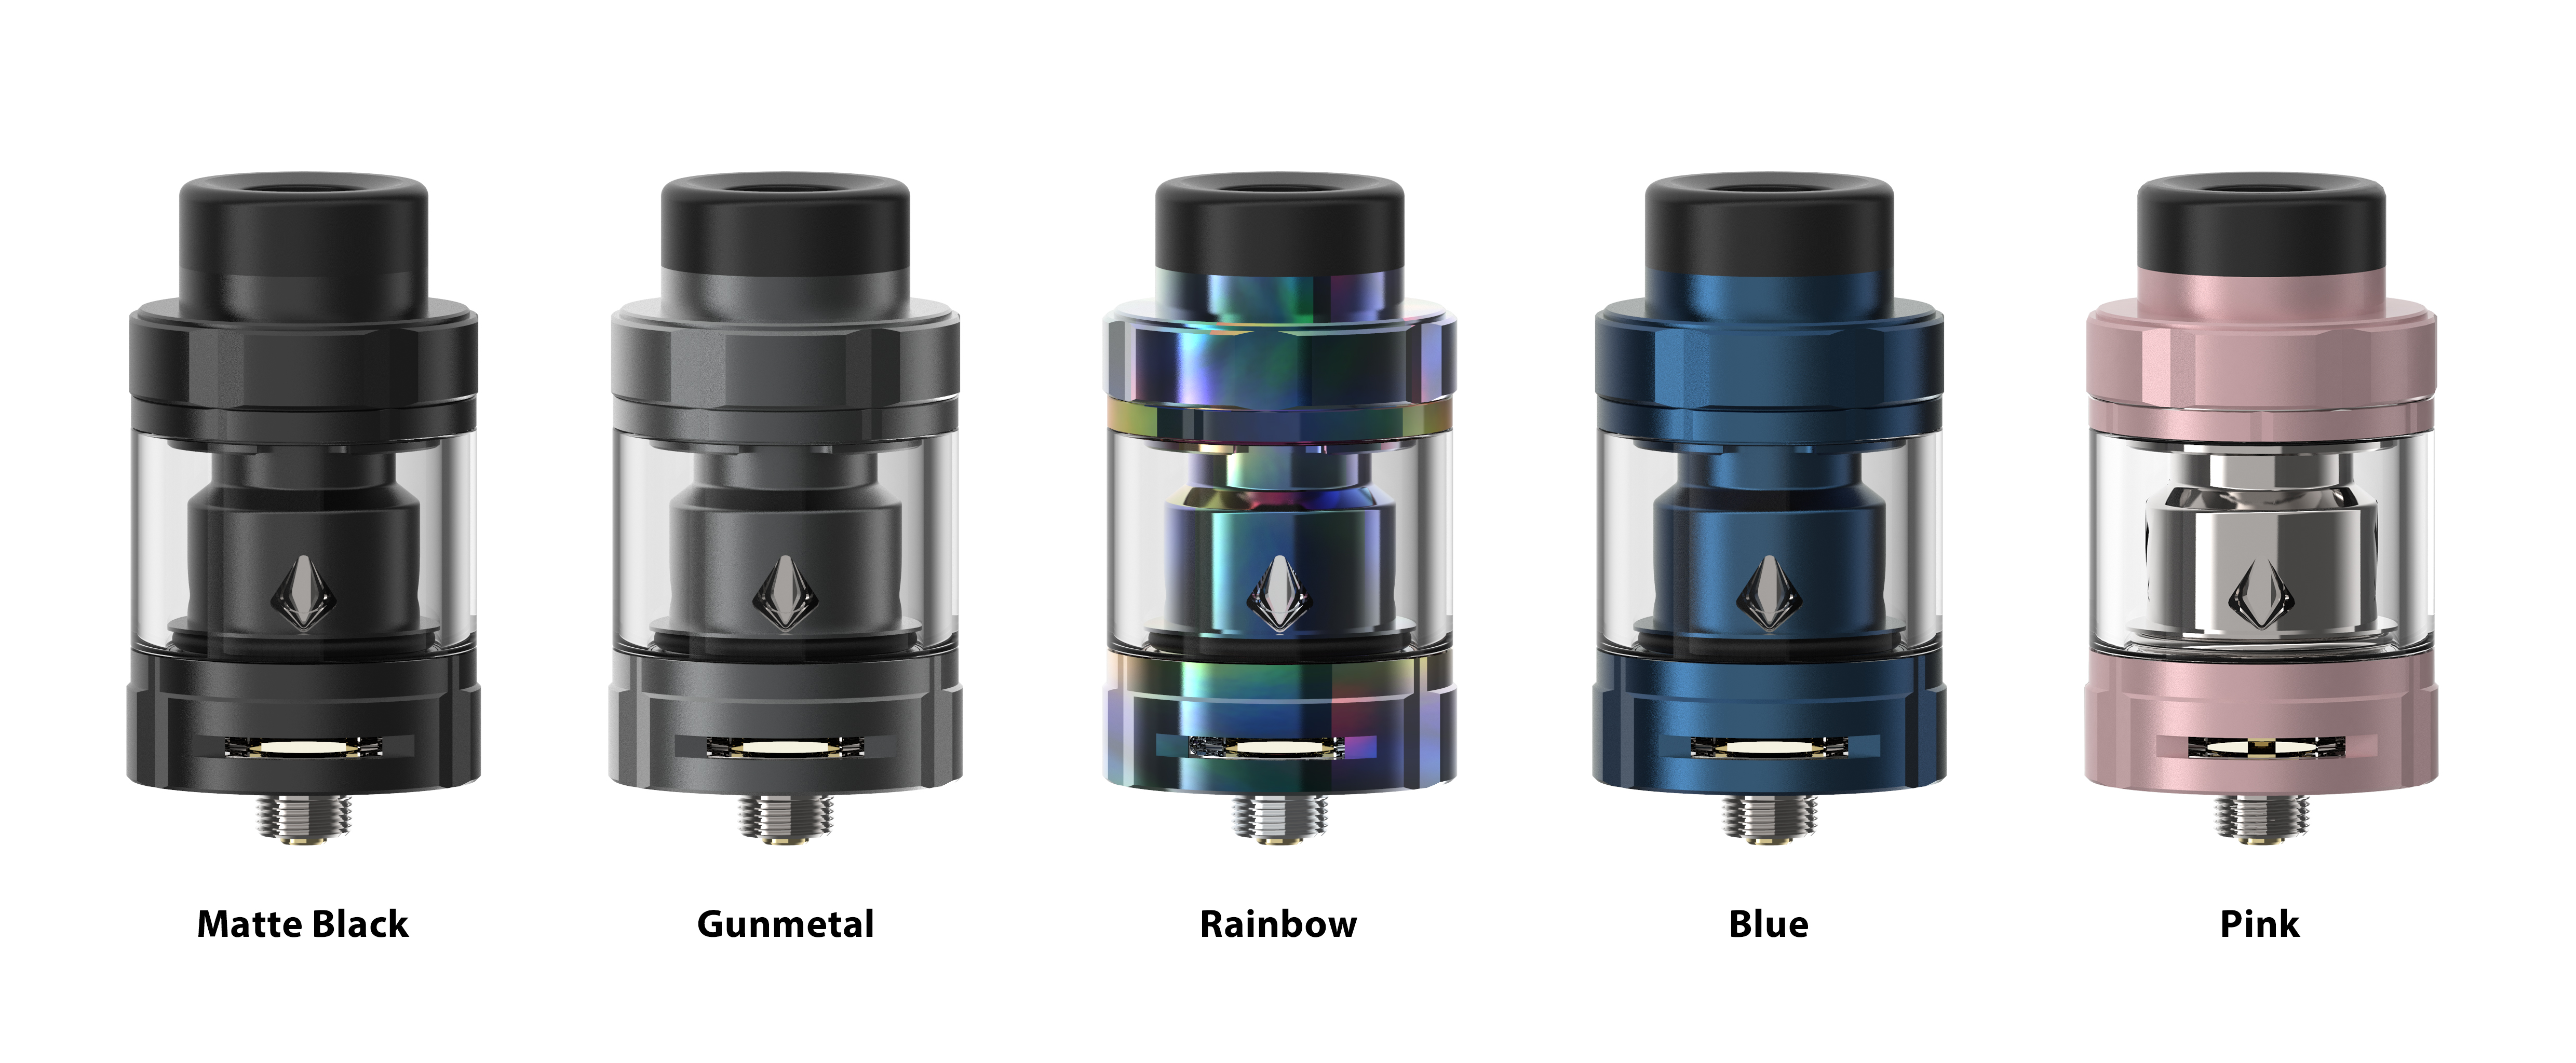 The Aspire Odan EVO tank TPD version in matte black, gunmetal, rainbow, blue and pink.